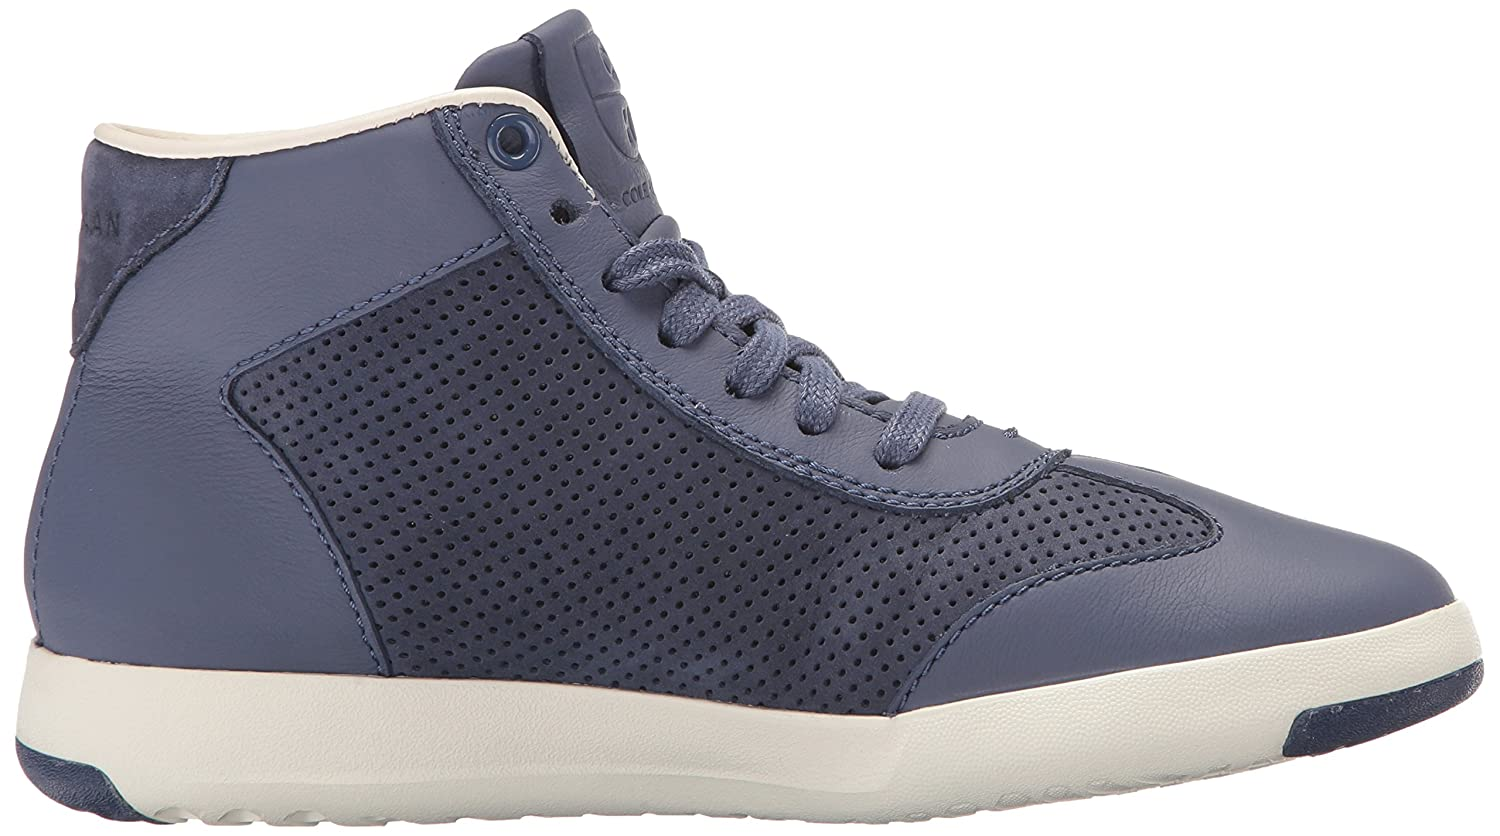 Cole B(M) Haan Women's Grandpro Hi B01NAIKEVH 10.5 B(M) Cole US|Washed Indigo Suede/Optic White 6bb0ea